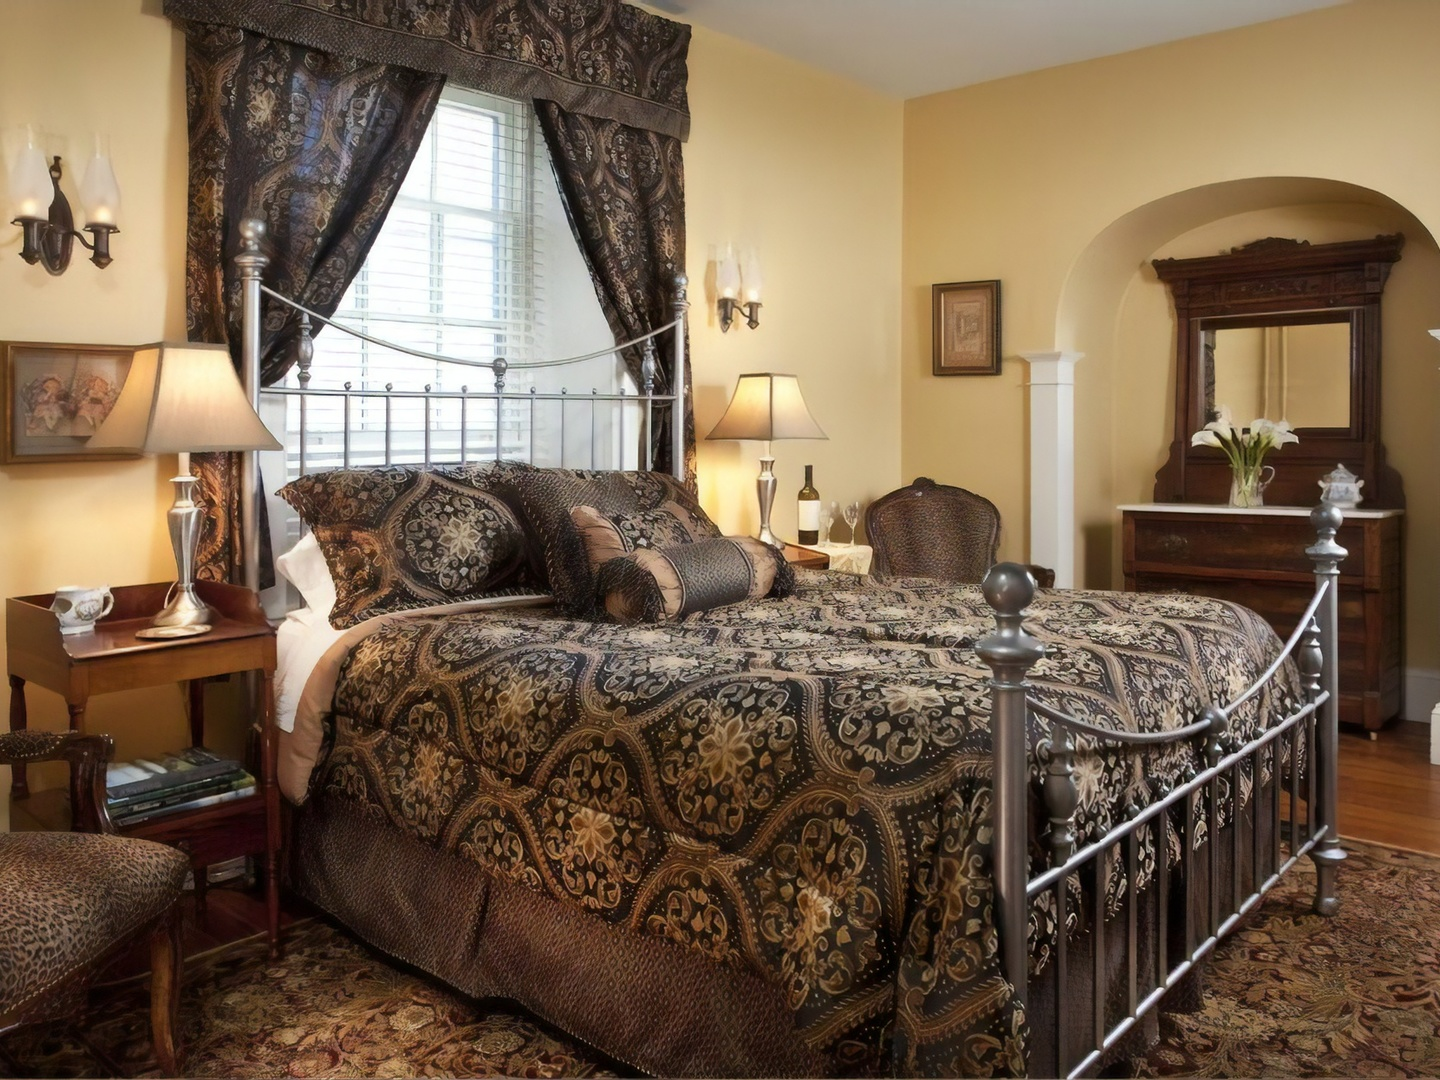 A bedroom with a bed and a chair in a room at Hamanassett Bed & Breakfast.